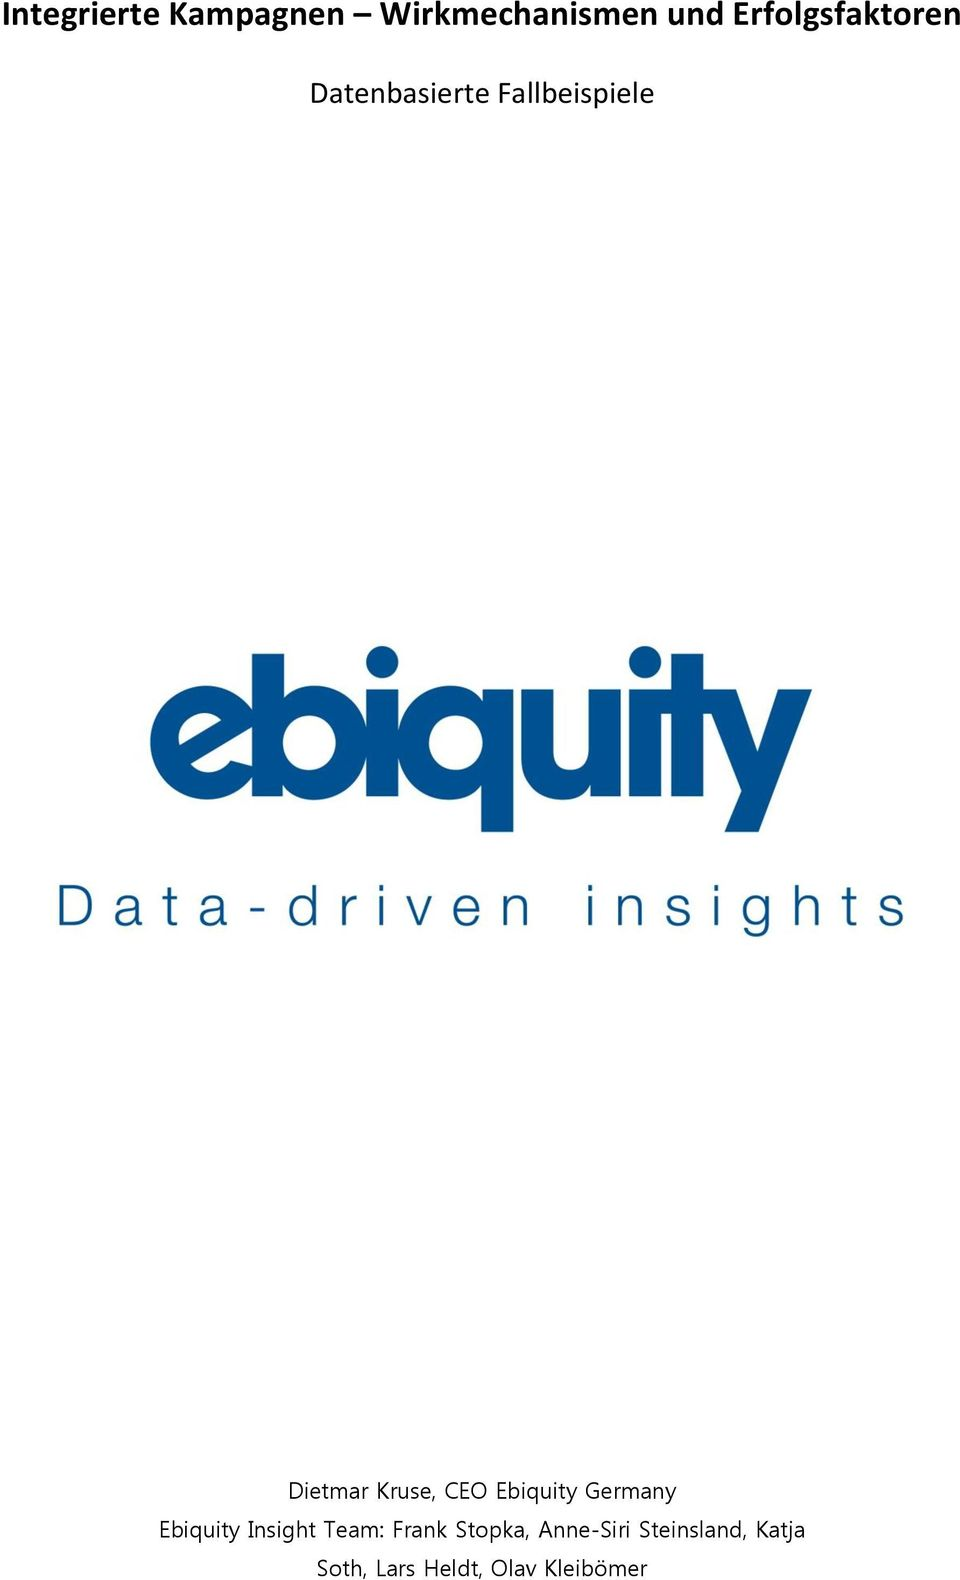 Germany Ebiquity Insight Team: Frank Stopka, Anne-Siri